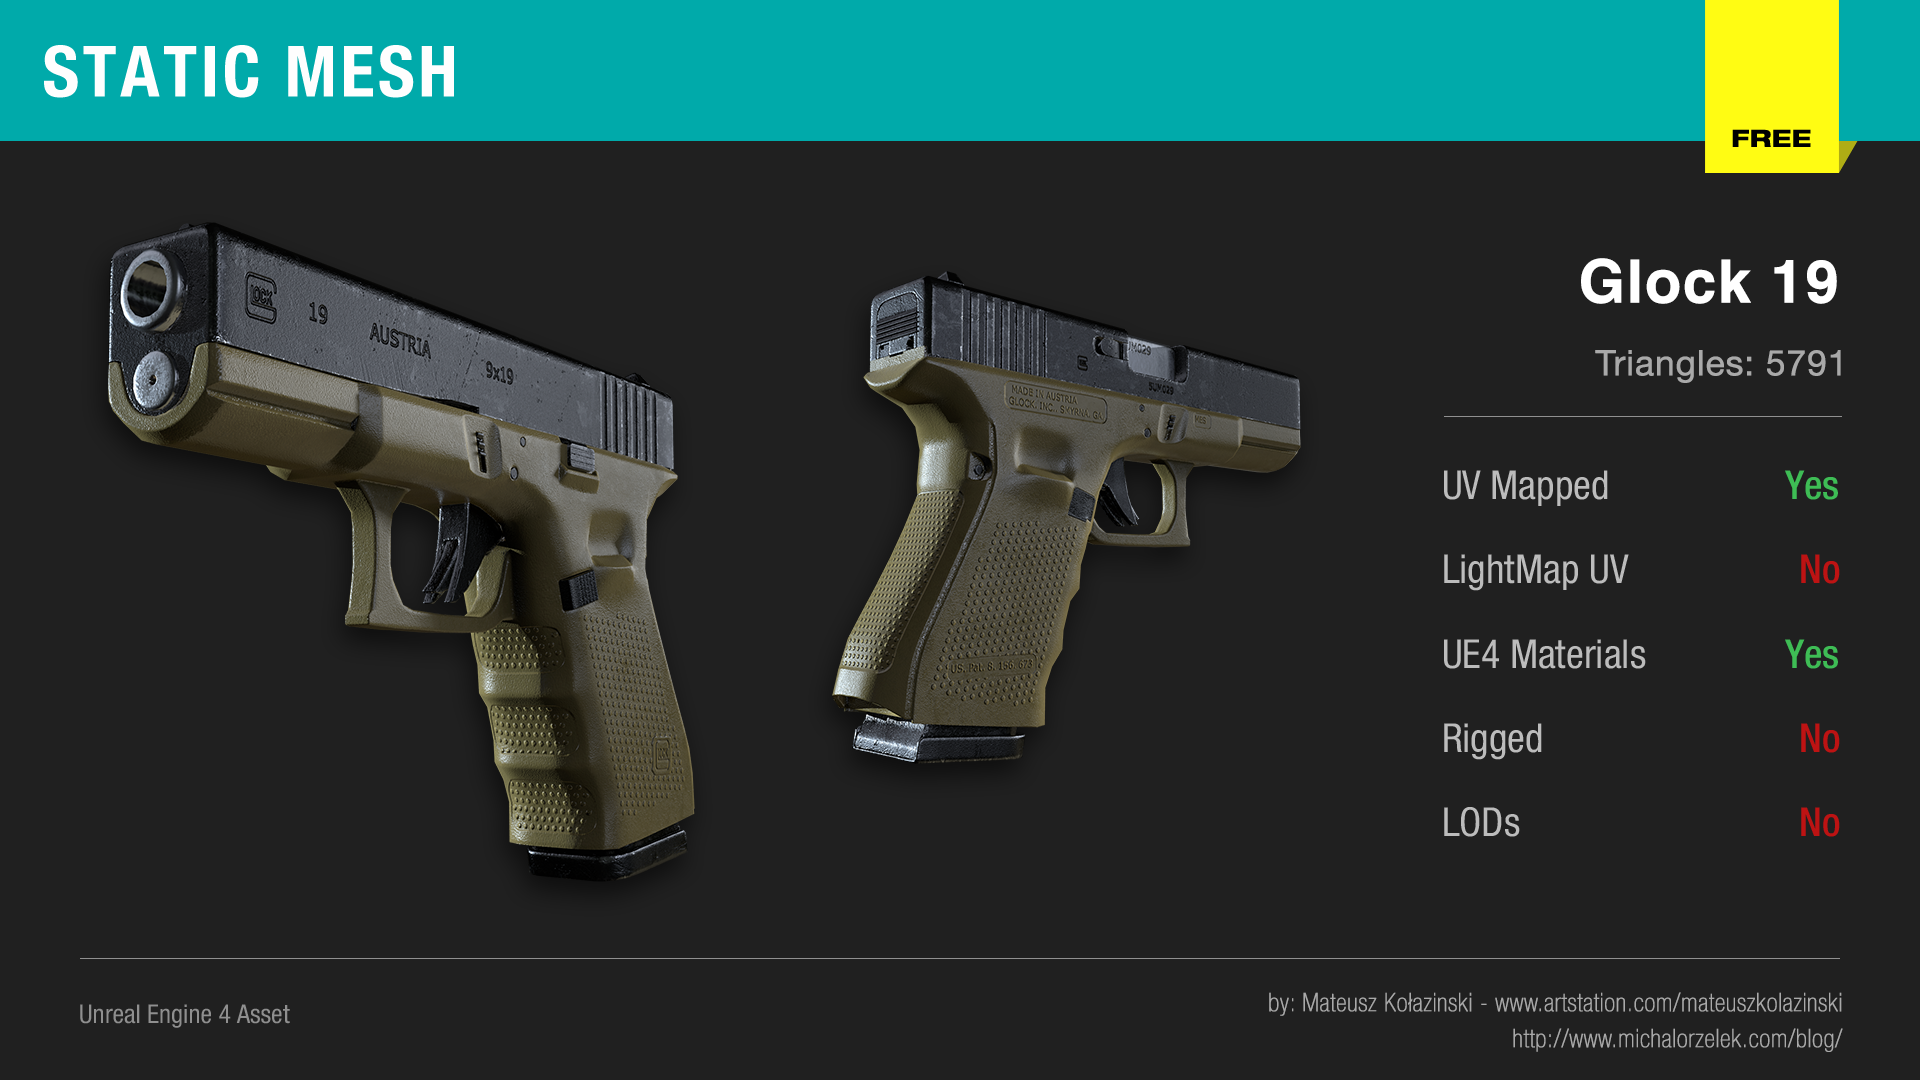 Static Mesh – Glock 19 | Unreal Engine 4 blog